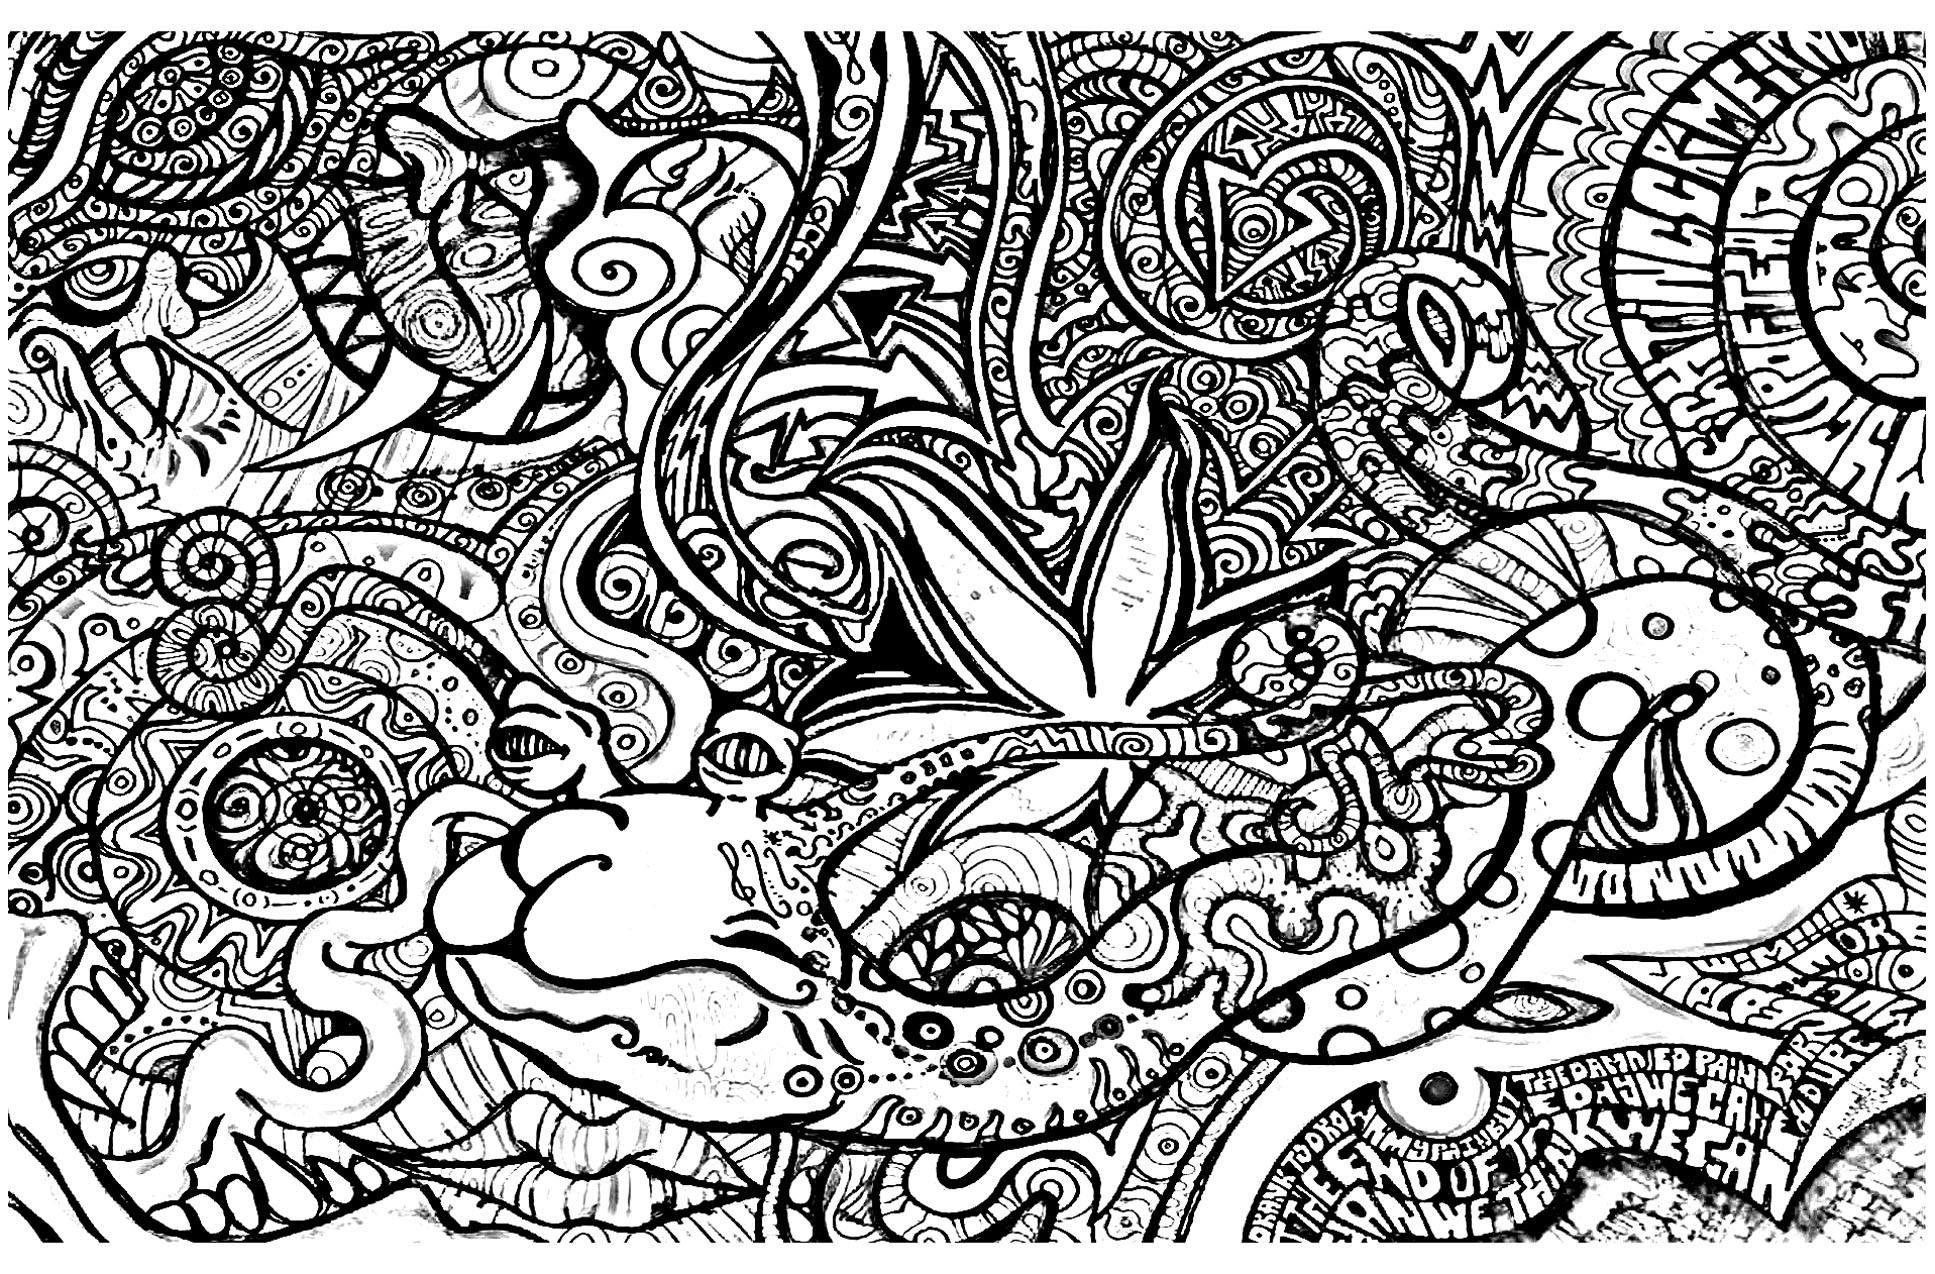 Coloring Pages : Trippy Coloring Pages Ruva Adult Online For Adults - Free Printable Trippy Coloring Pages